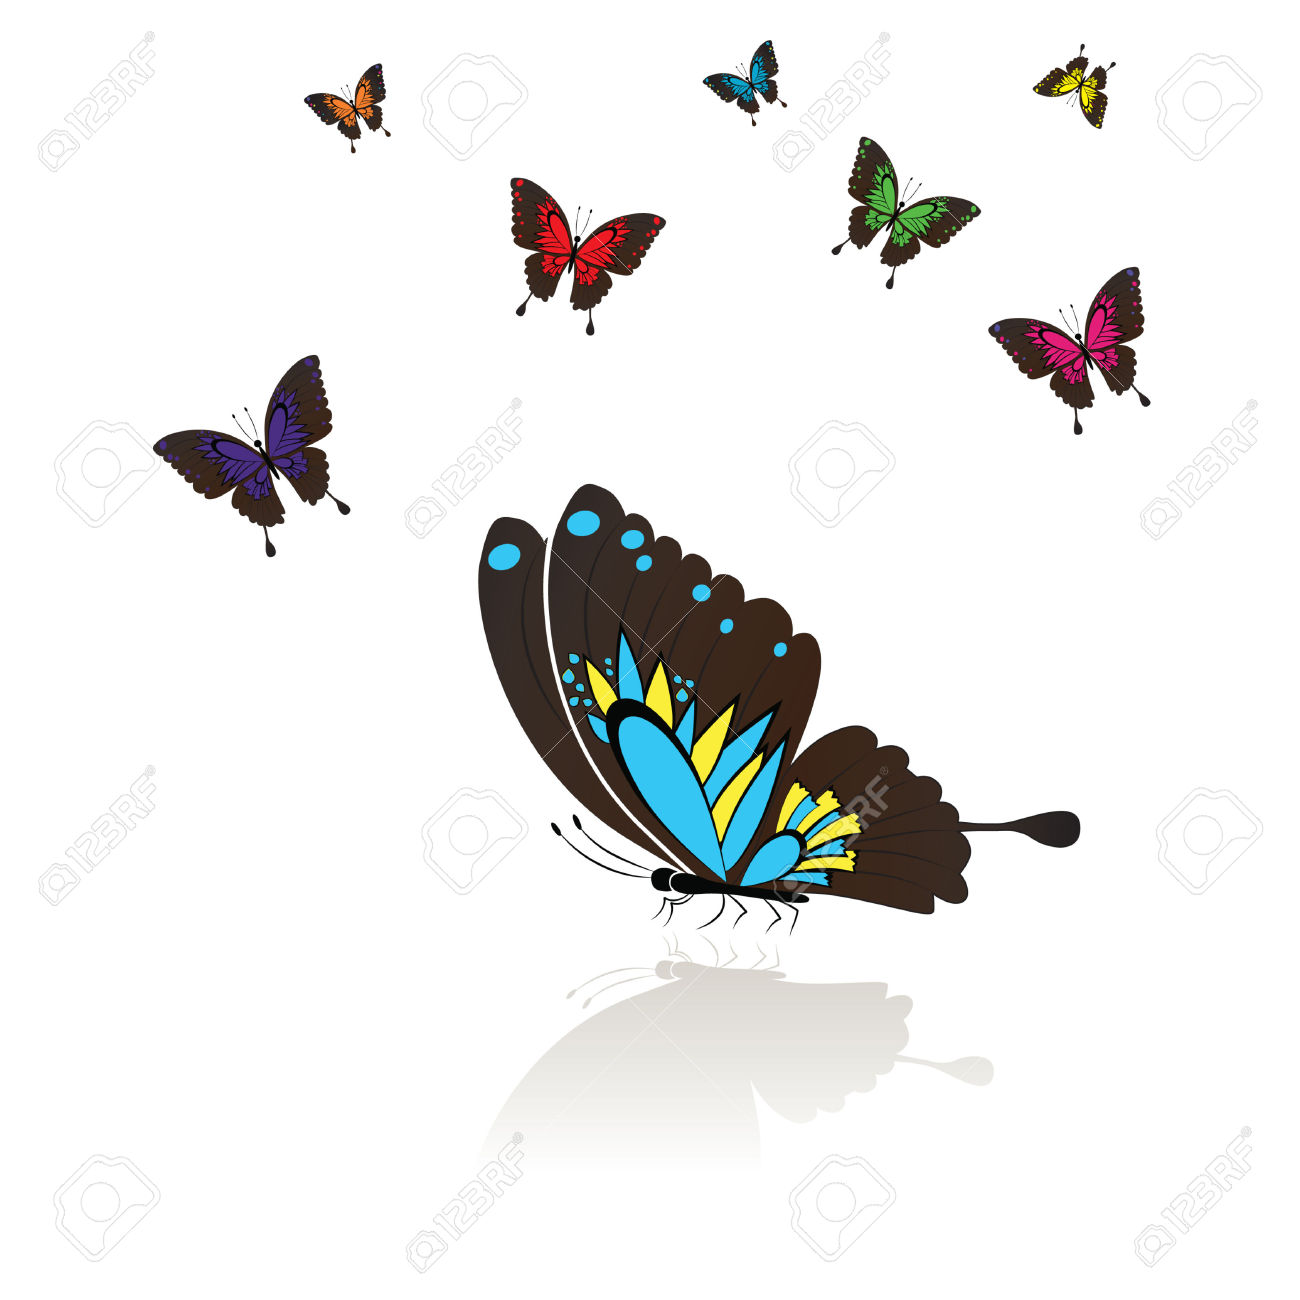 Collect Of Many Colored Butterflies With A Mirror Reflection.